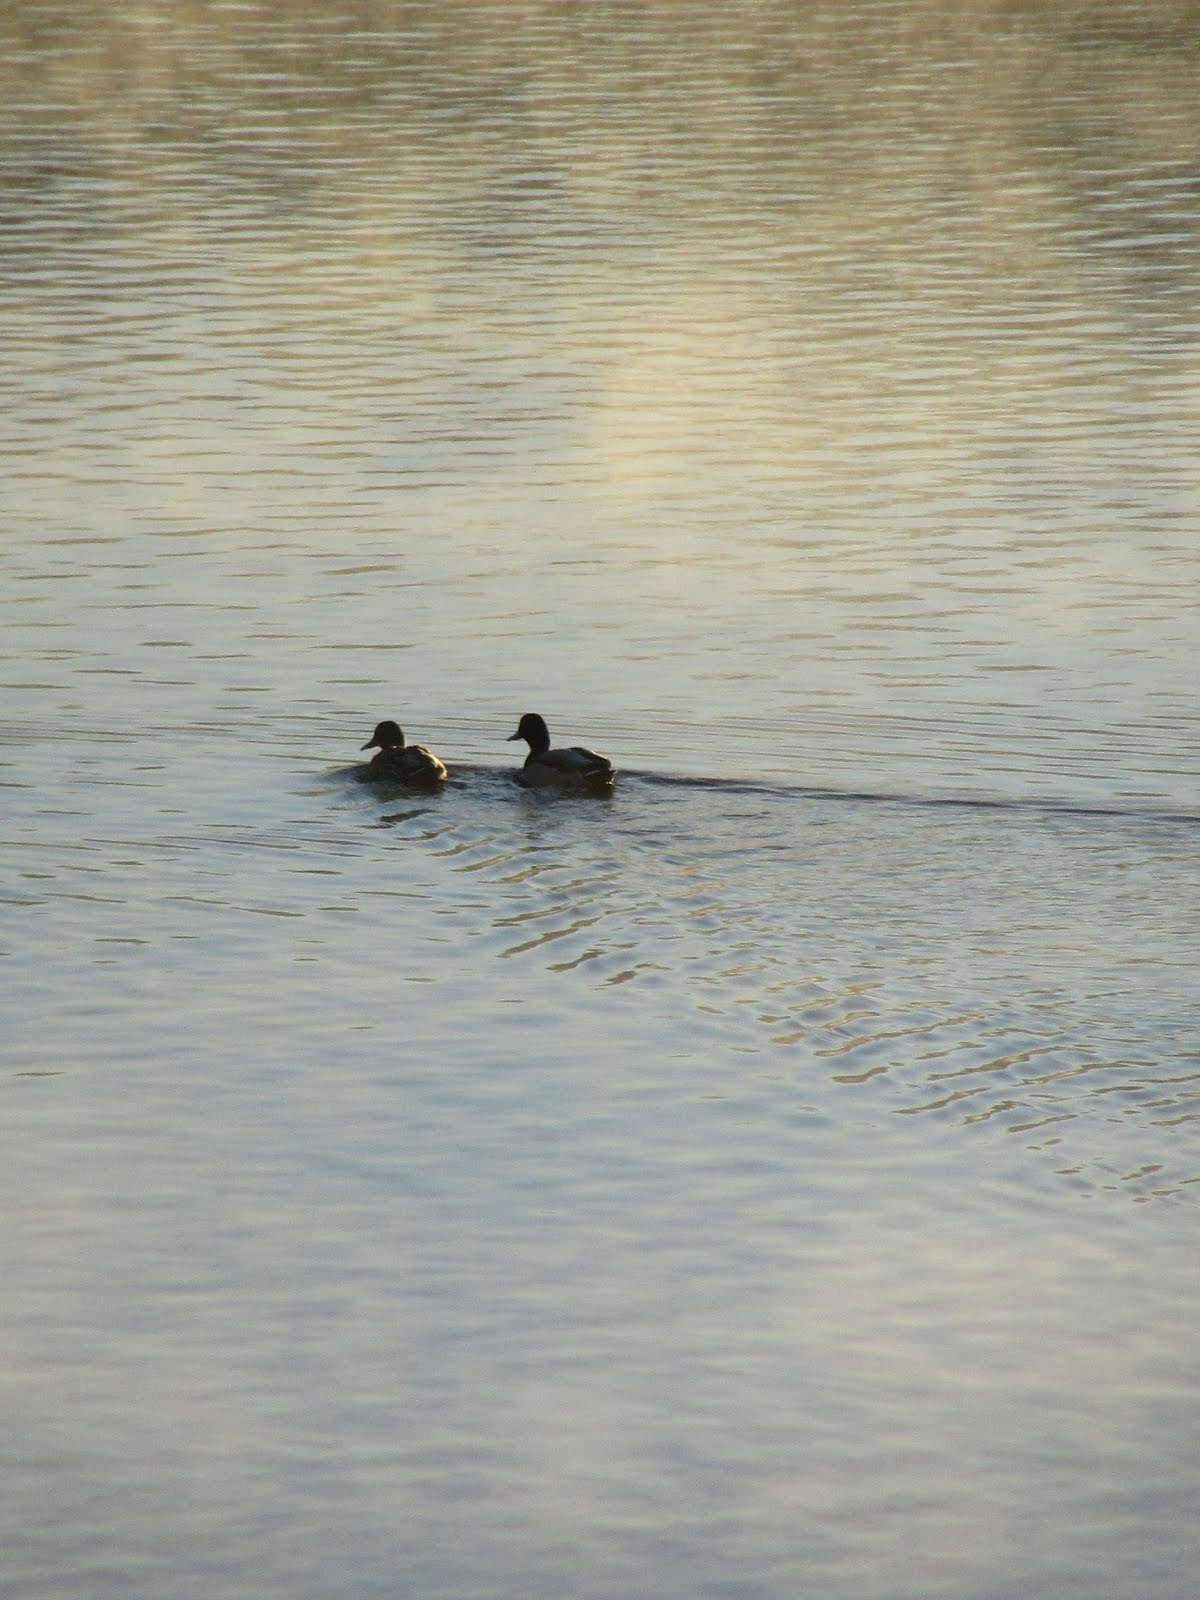 Ducks Swimming